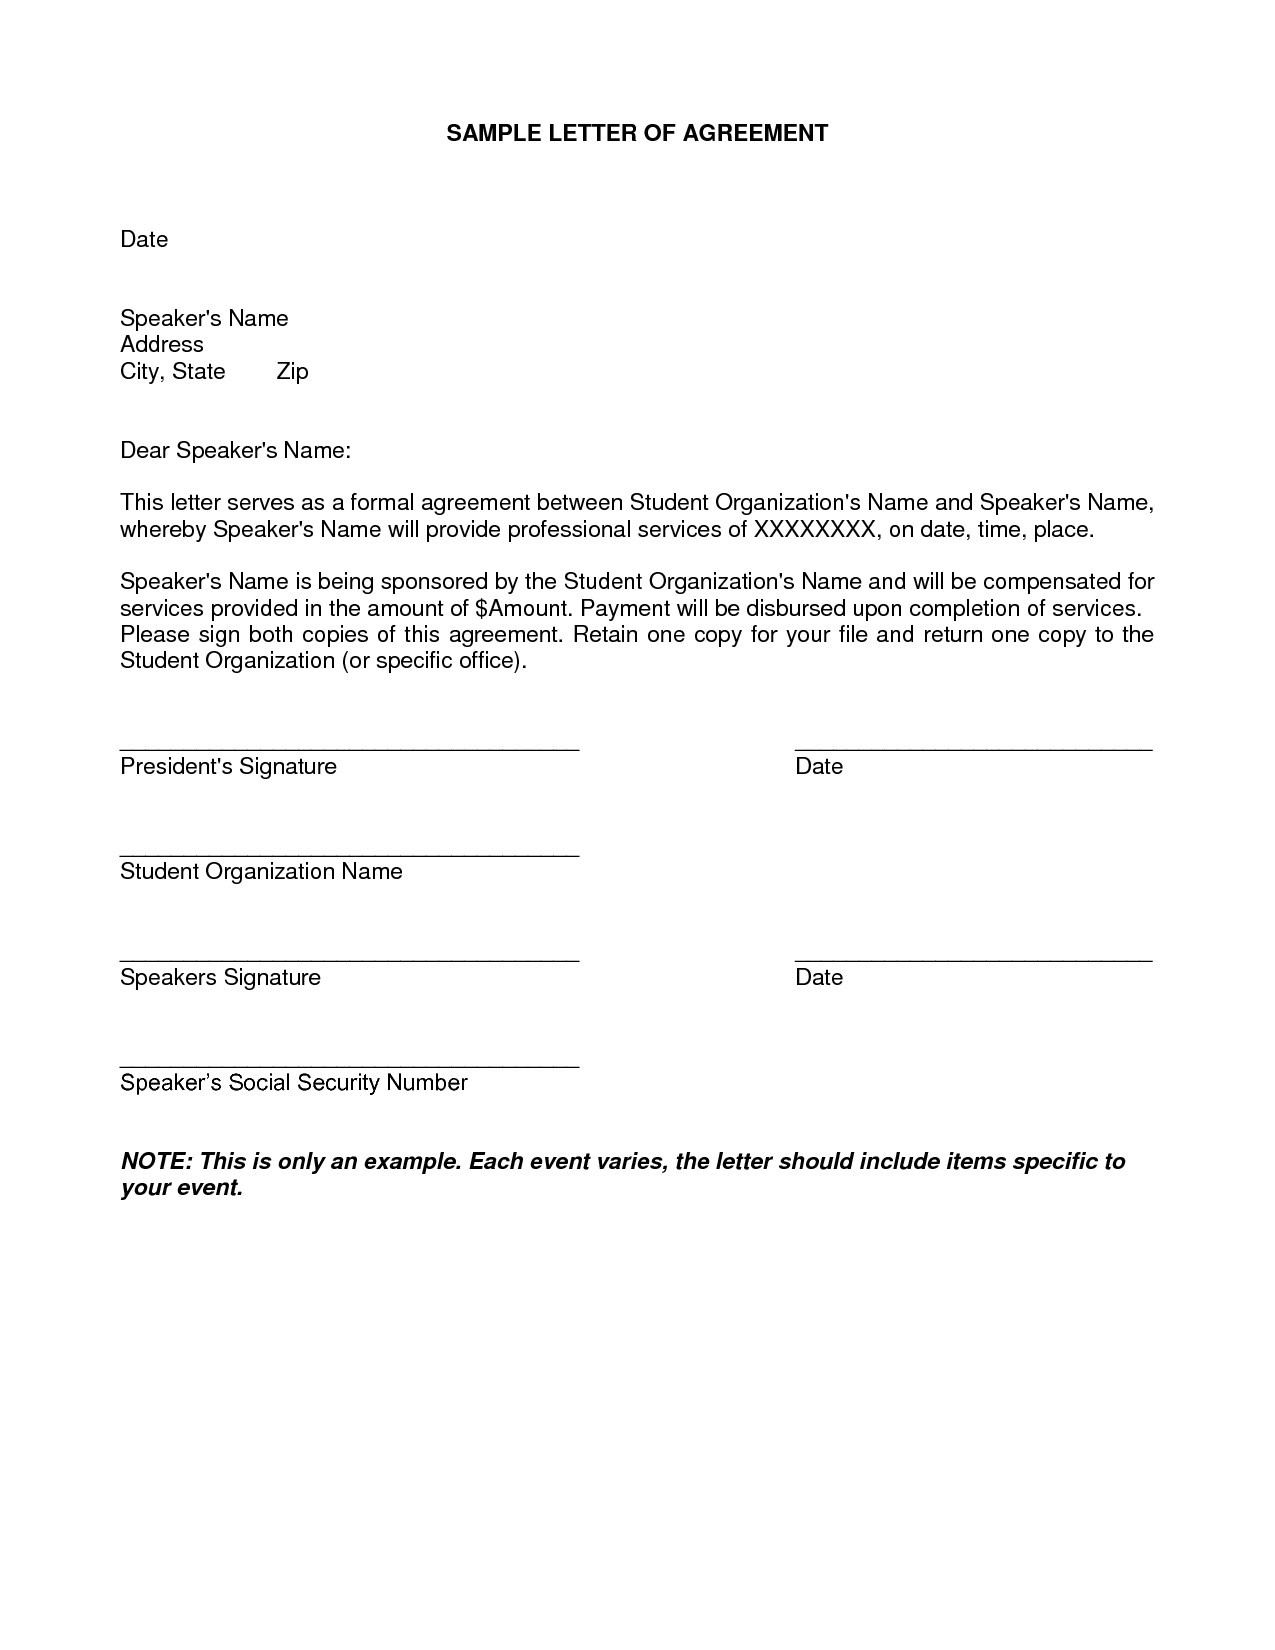 Letter Template to Irs - Payment Arrangement Contract New Contract Payment Plan form Pdf Irs